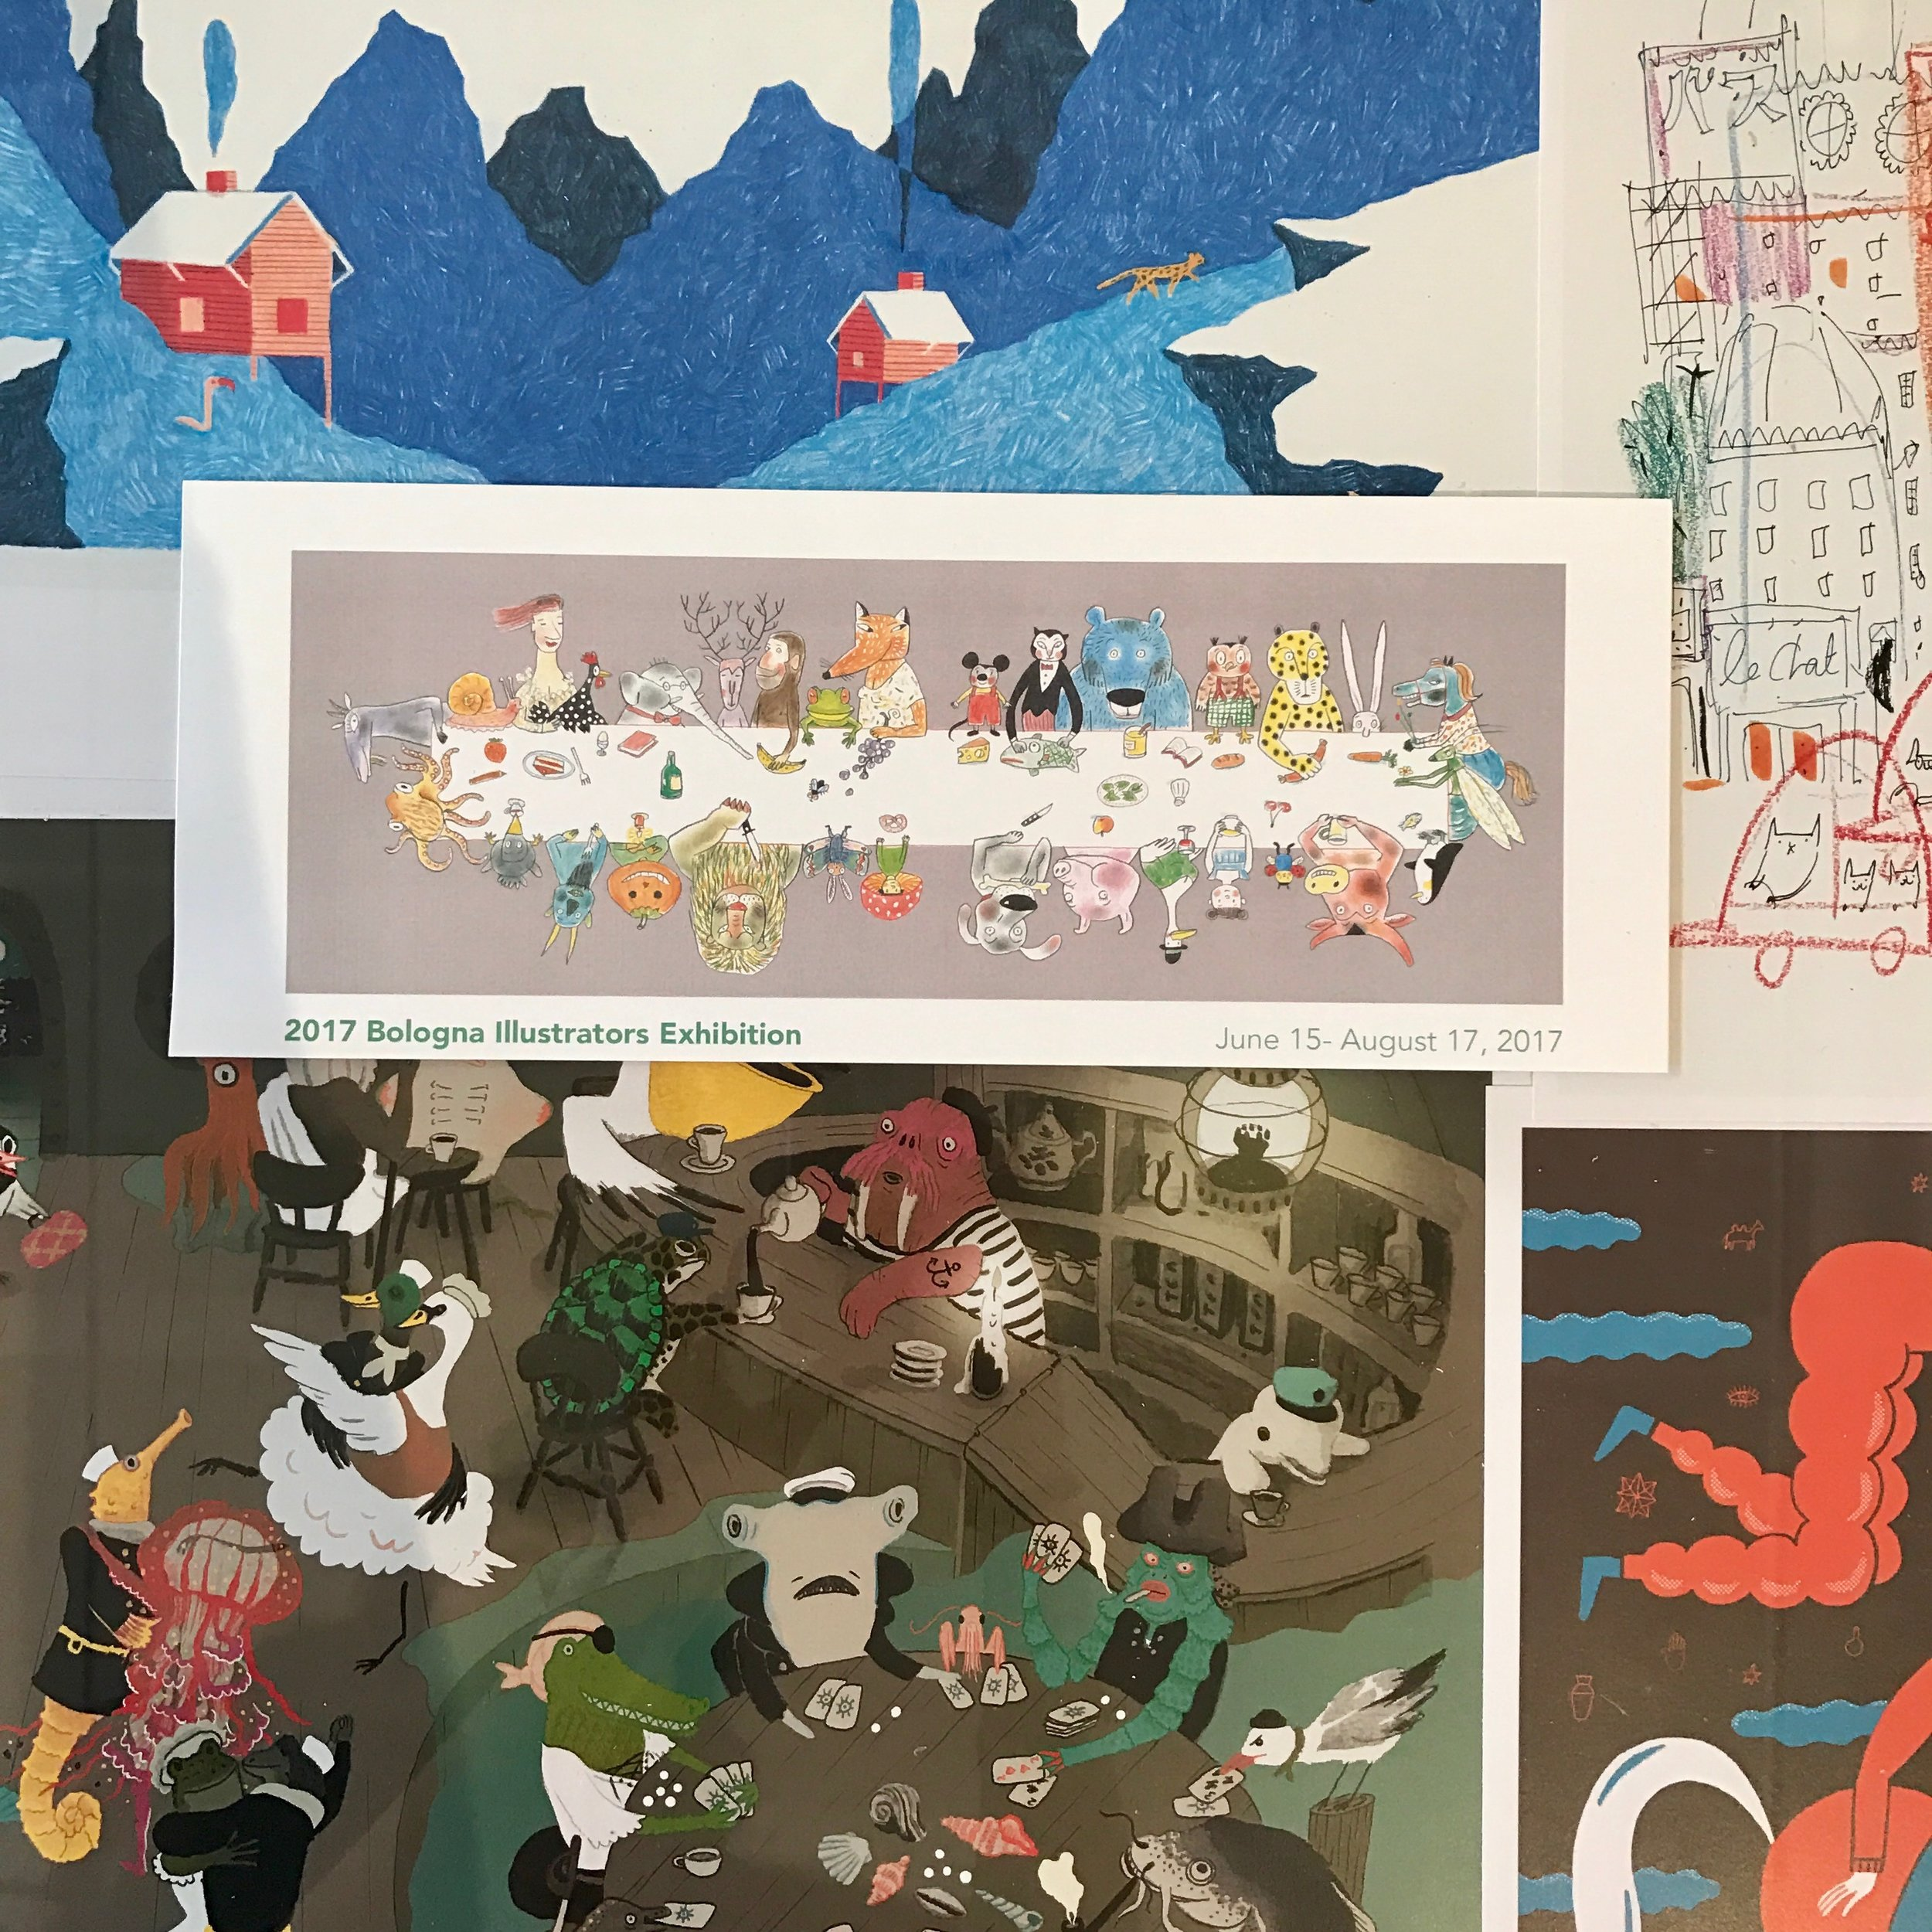 Bologna Illustrators Exhibition -